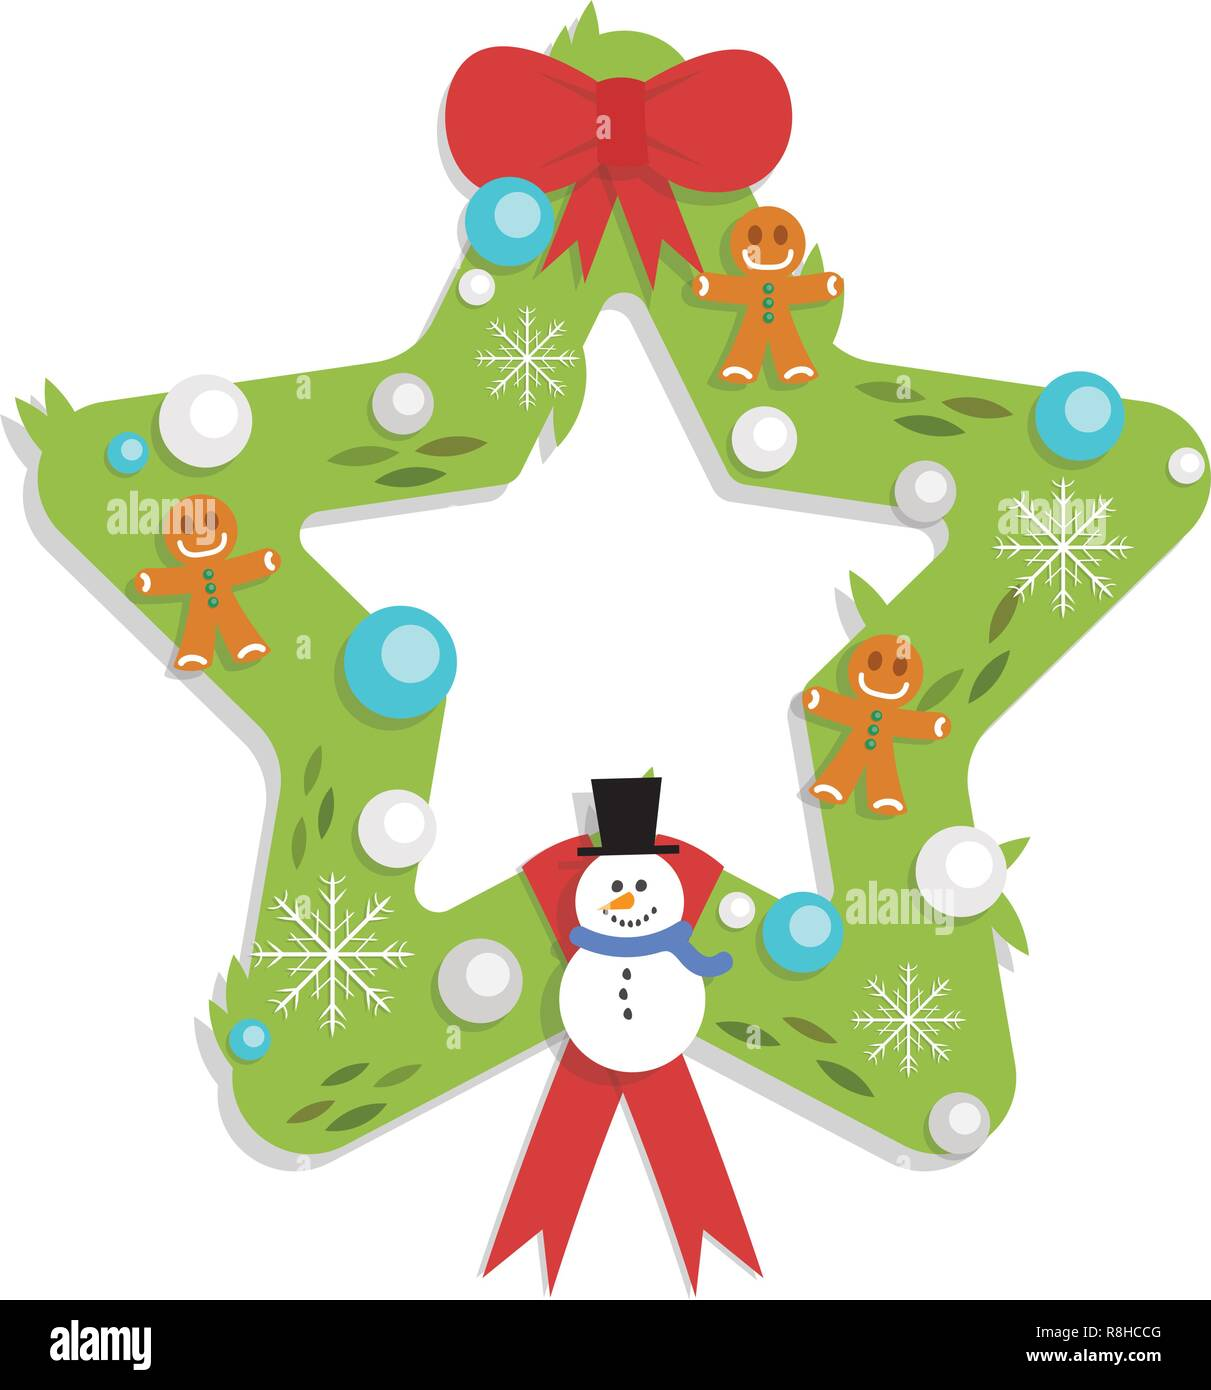 Christmas Star Shaped Garland Cartoon Flat Style Isolated Stock